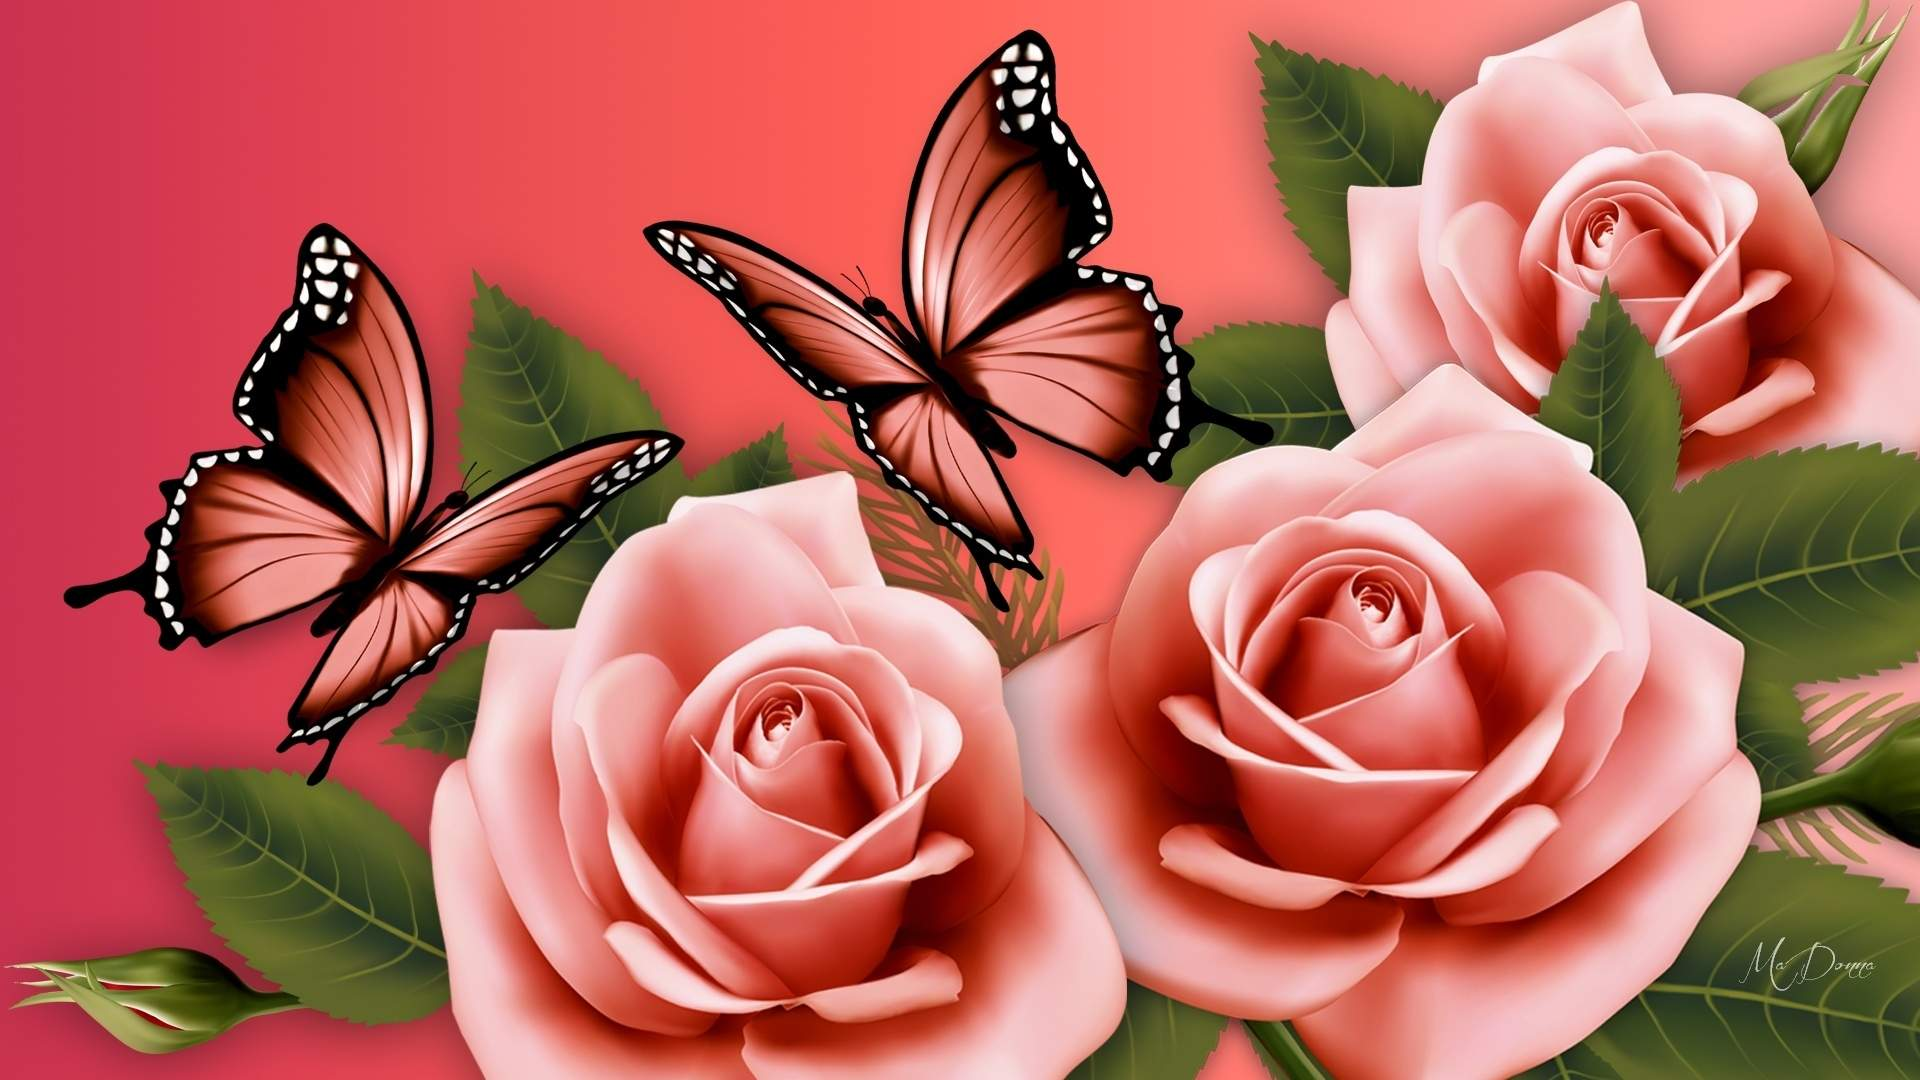 Flowers And Butterflies Wallpaper   36 Group Wallpapers 1920x1080